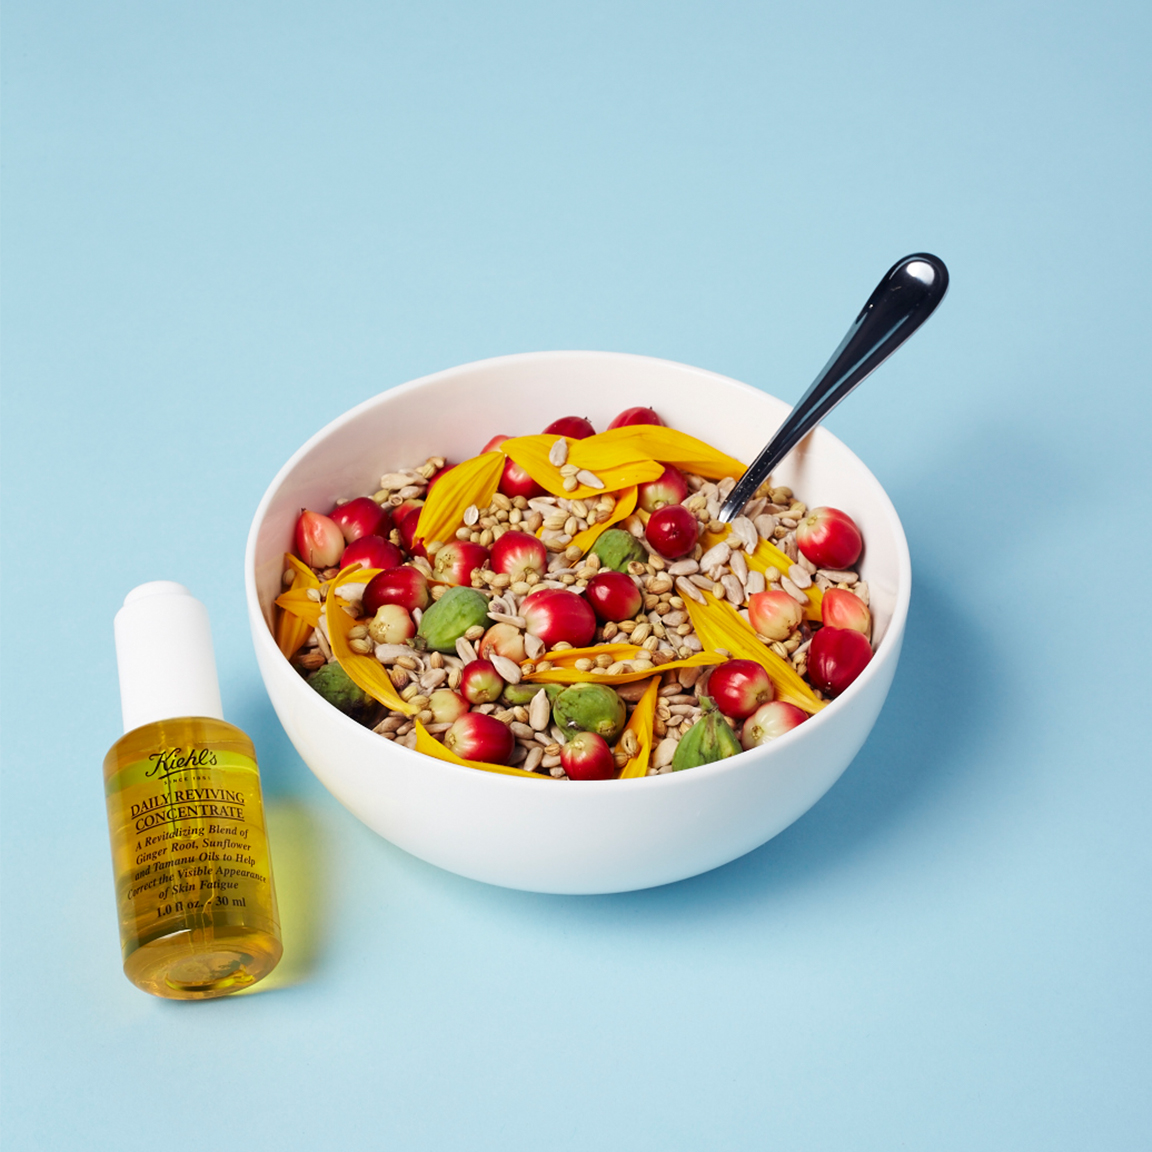 Kheil's Daily Reviving Concentrate Ad: Cereal